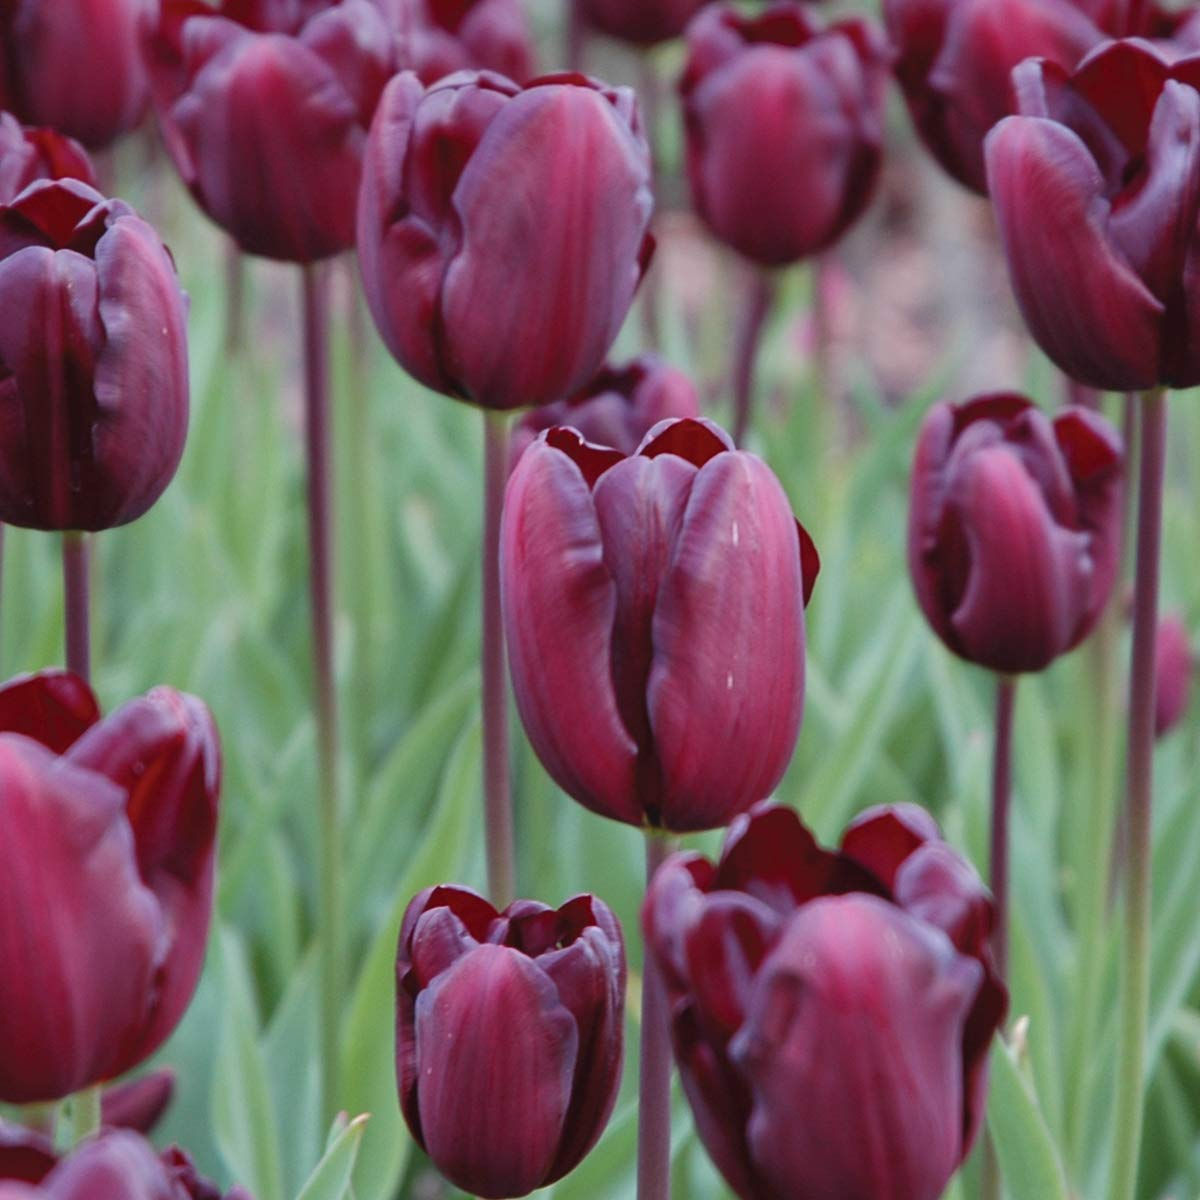 Burpee Continental Tulip | 10 Large Flowering Fall Bulbs for Planting, Burgandy by Burpee